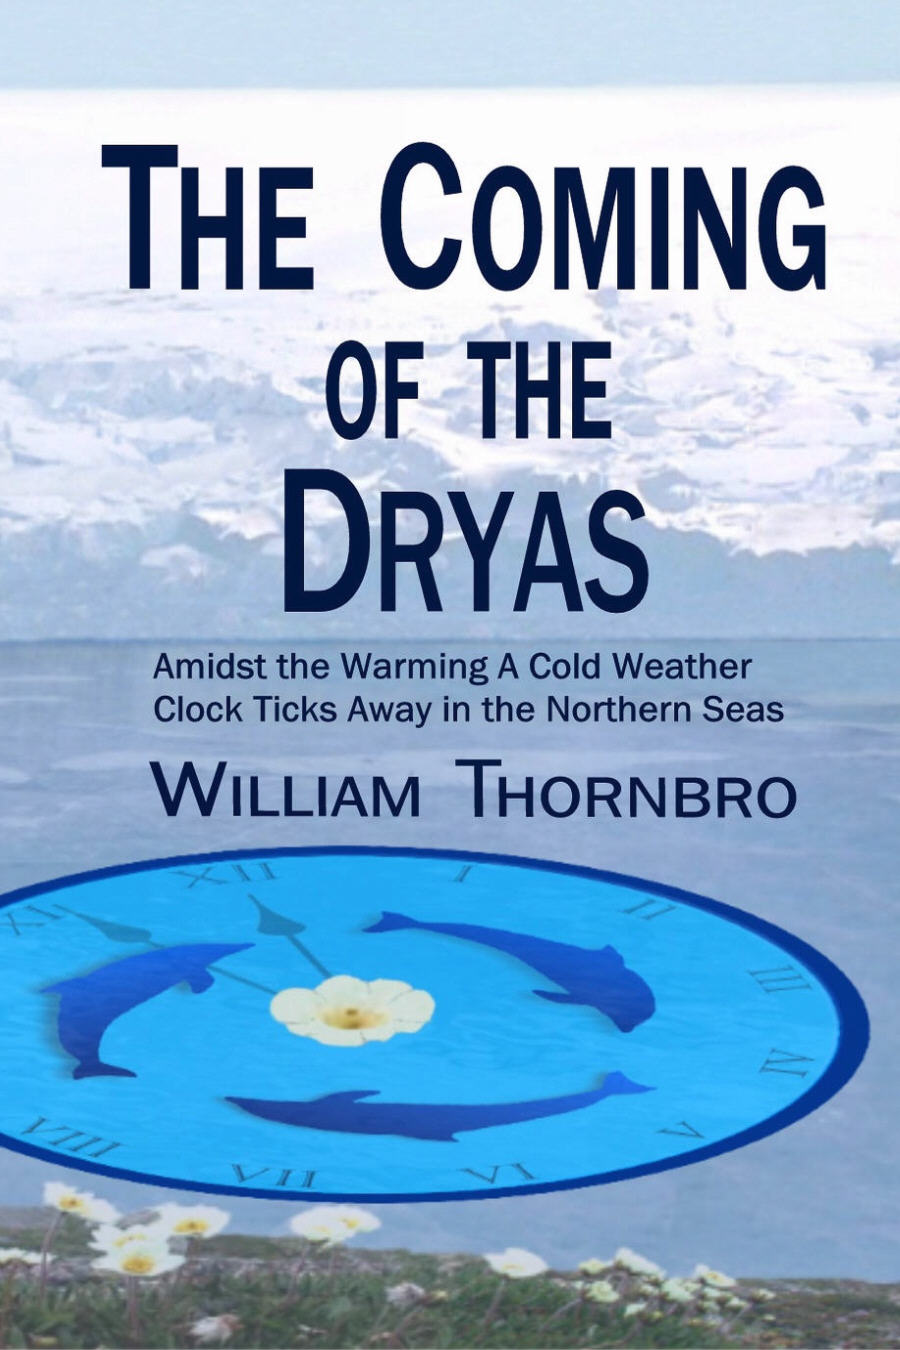 THE COMING OF THE DRYAS